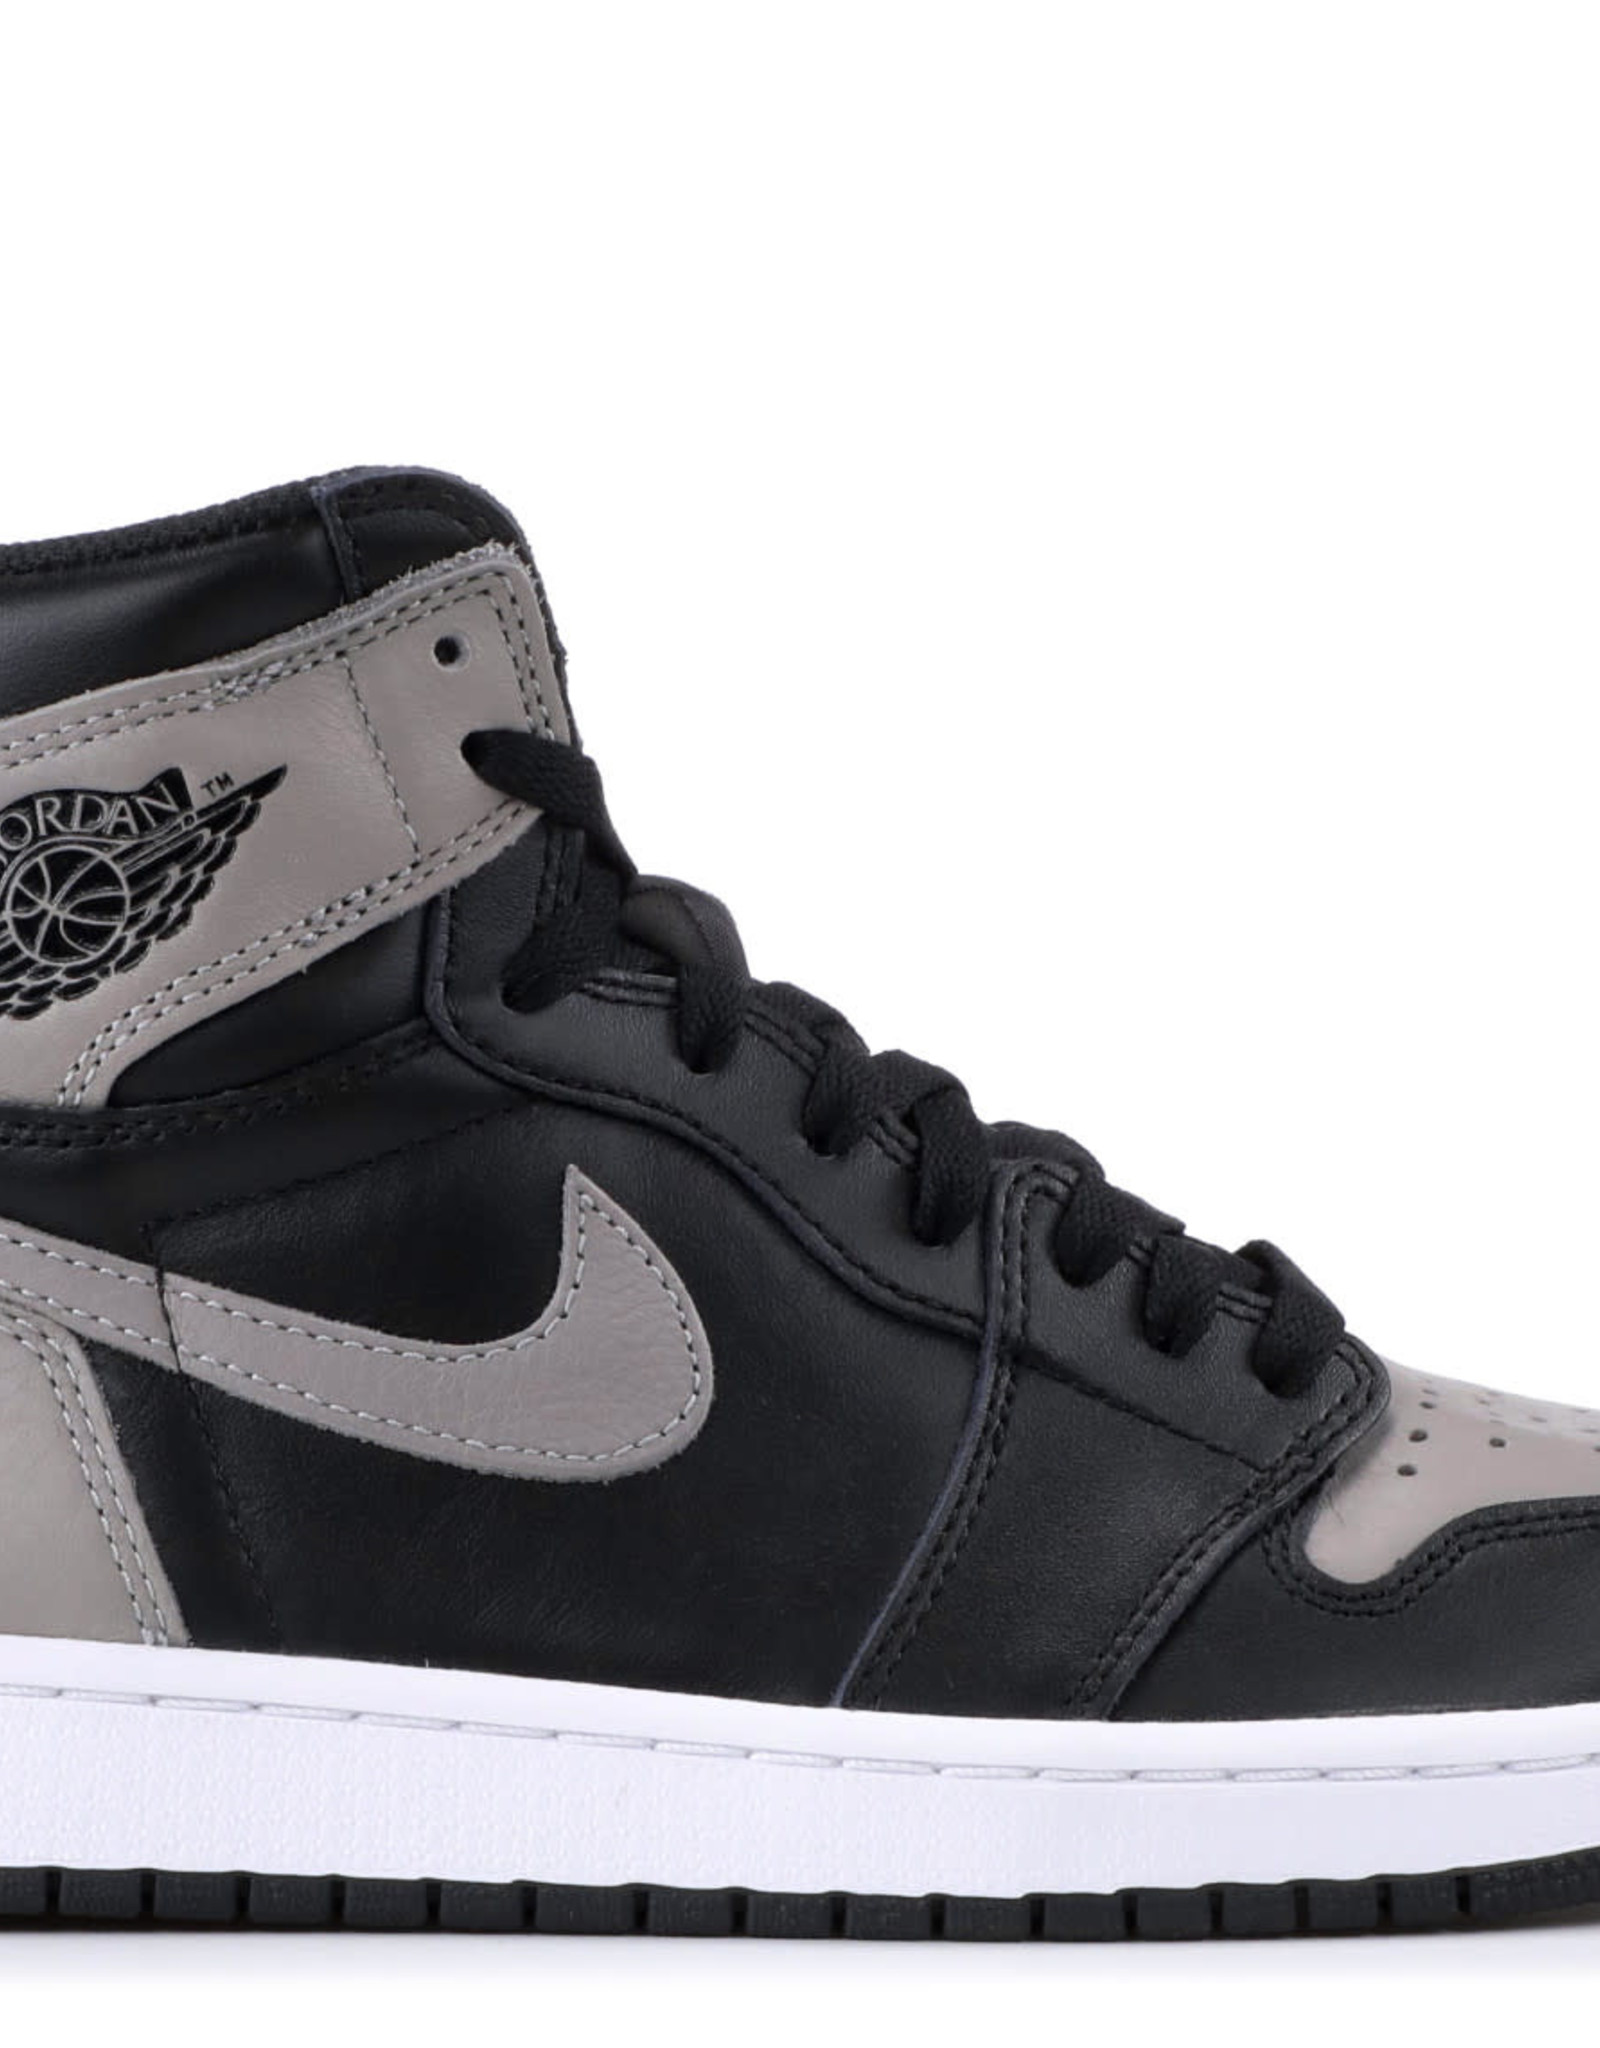 "JORDAN AIR JORDAN 1 RETRO HIGH OG "" SHADOW"""